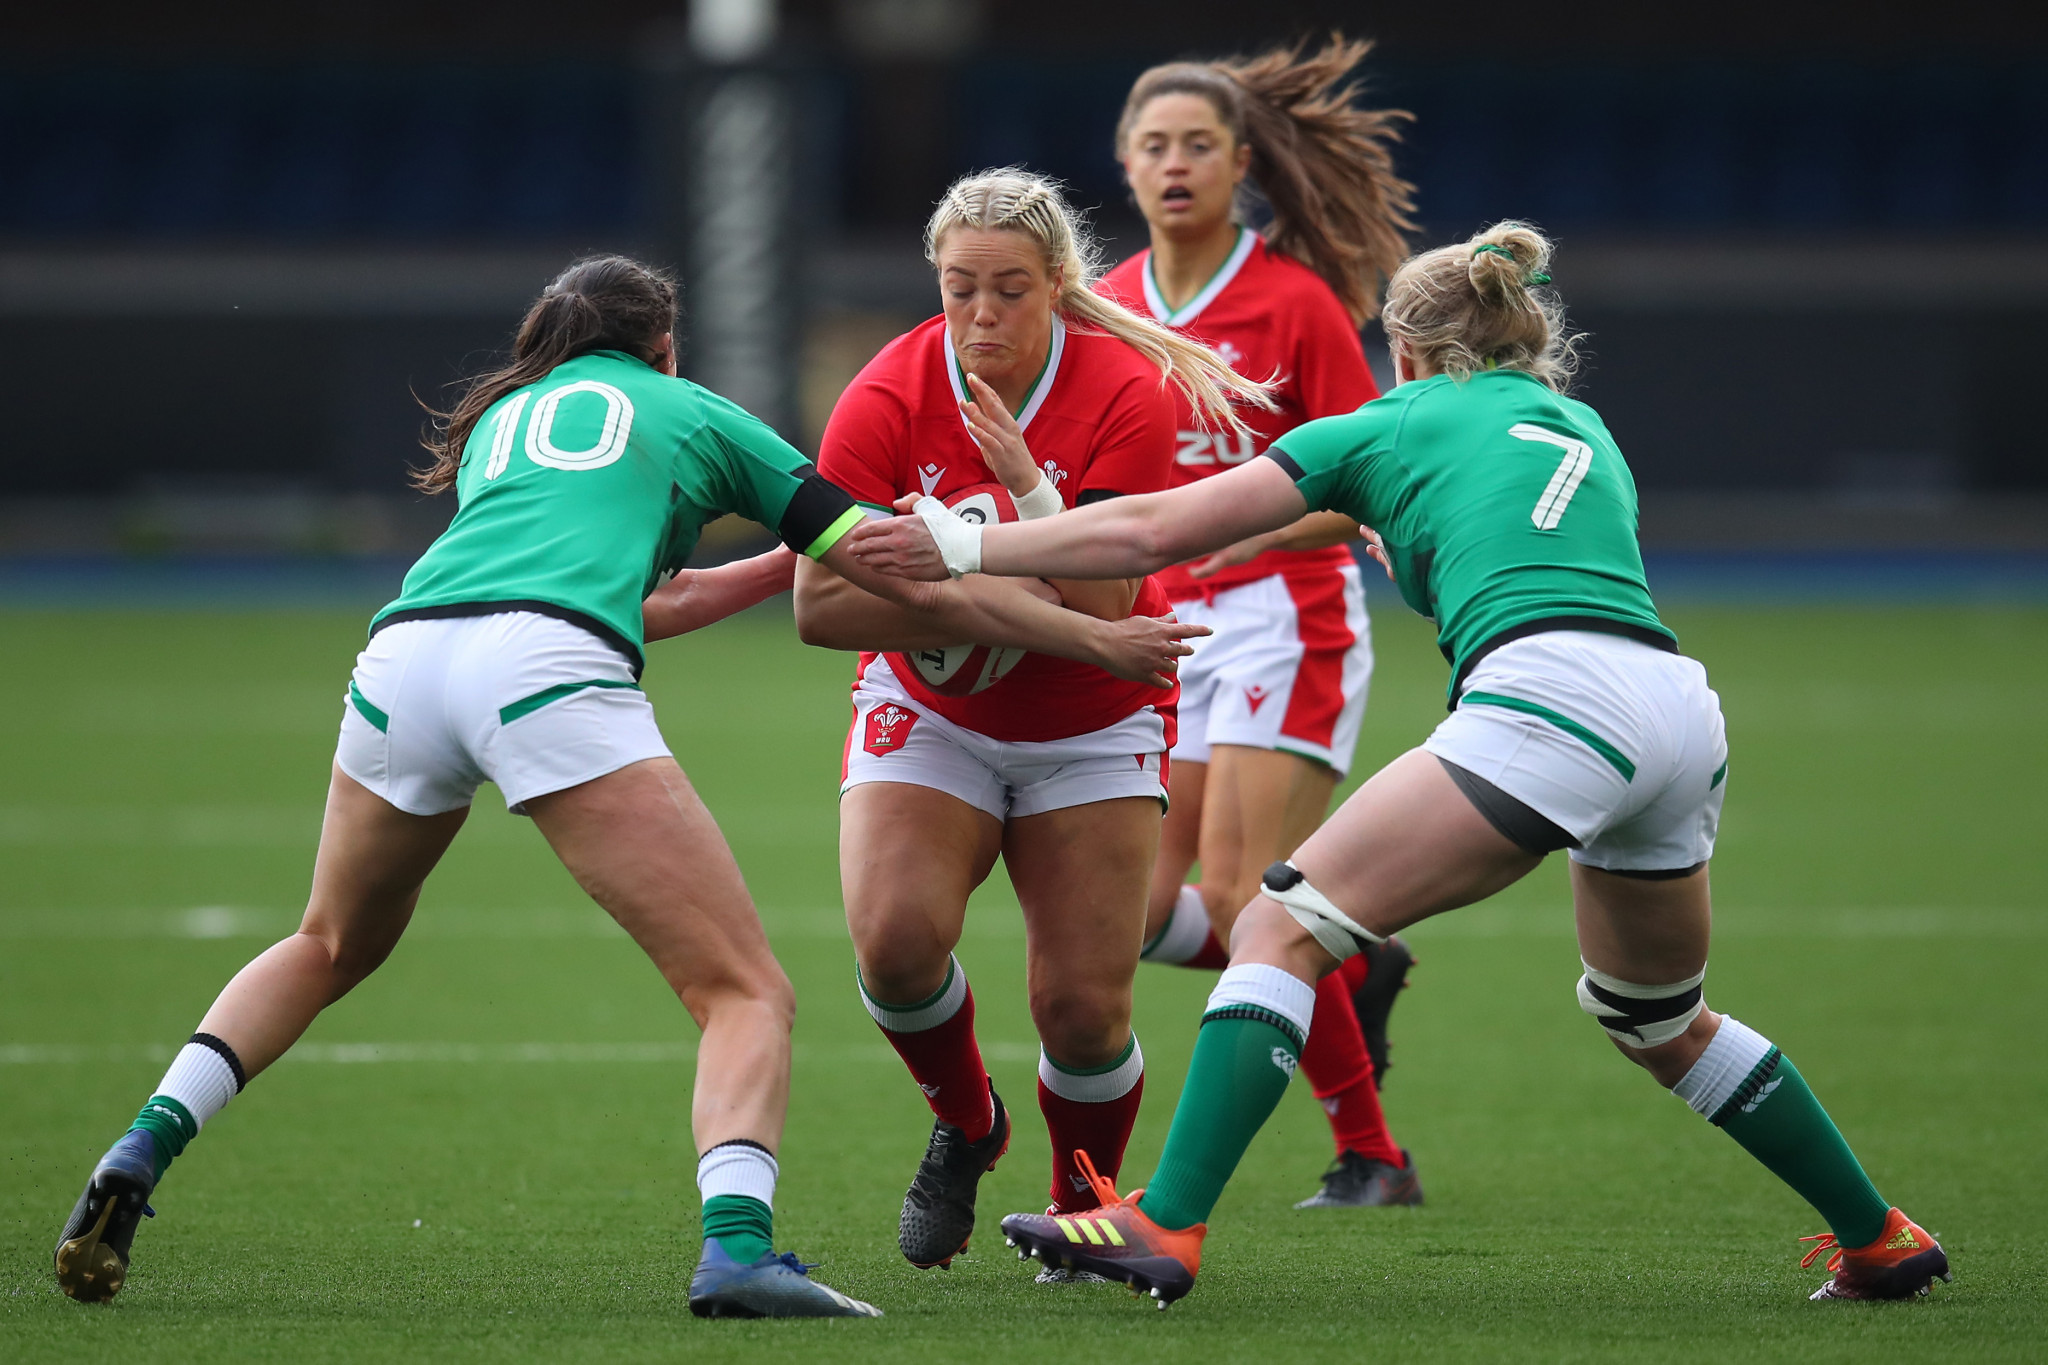 Women's Six Nations match between Ireland and France in doubt because of quarantine restrictions